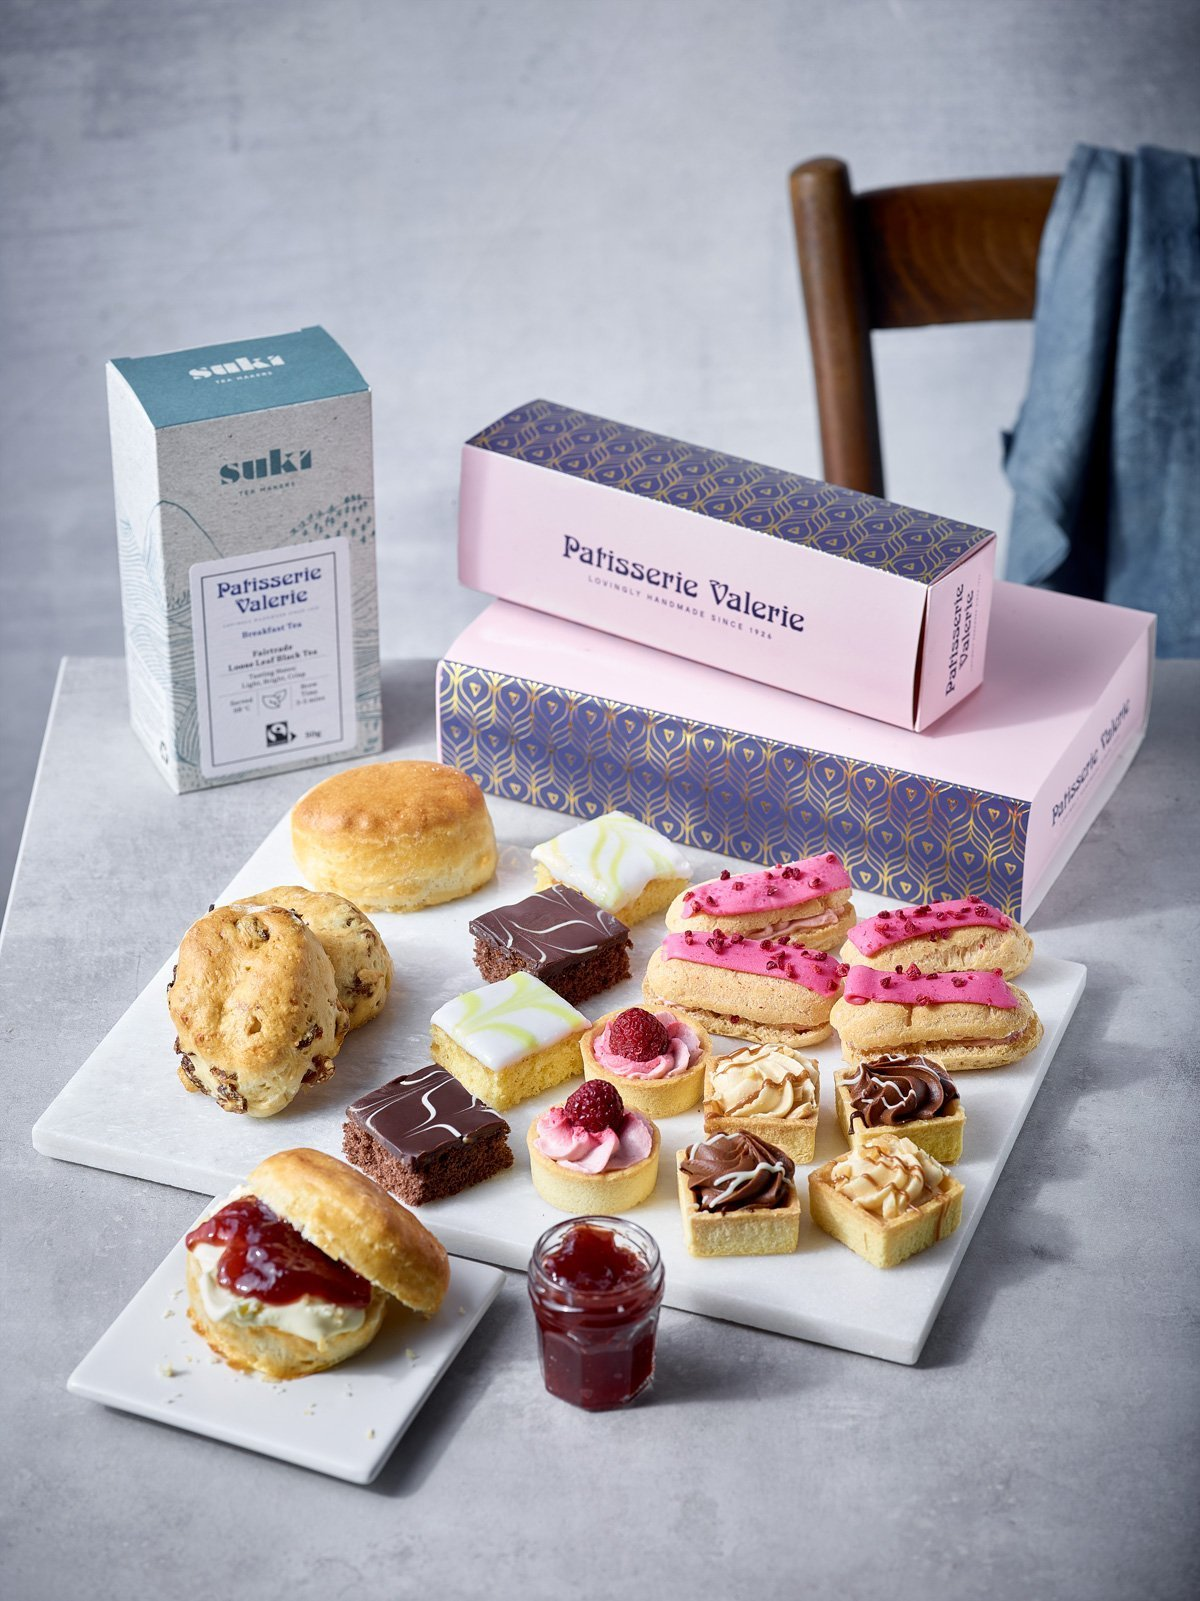 Afternoon Tea - Patisserie Valerie